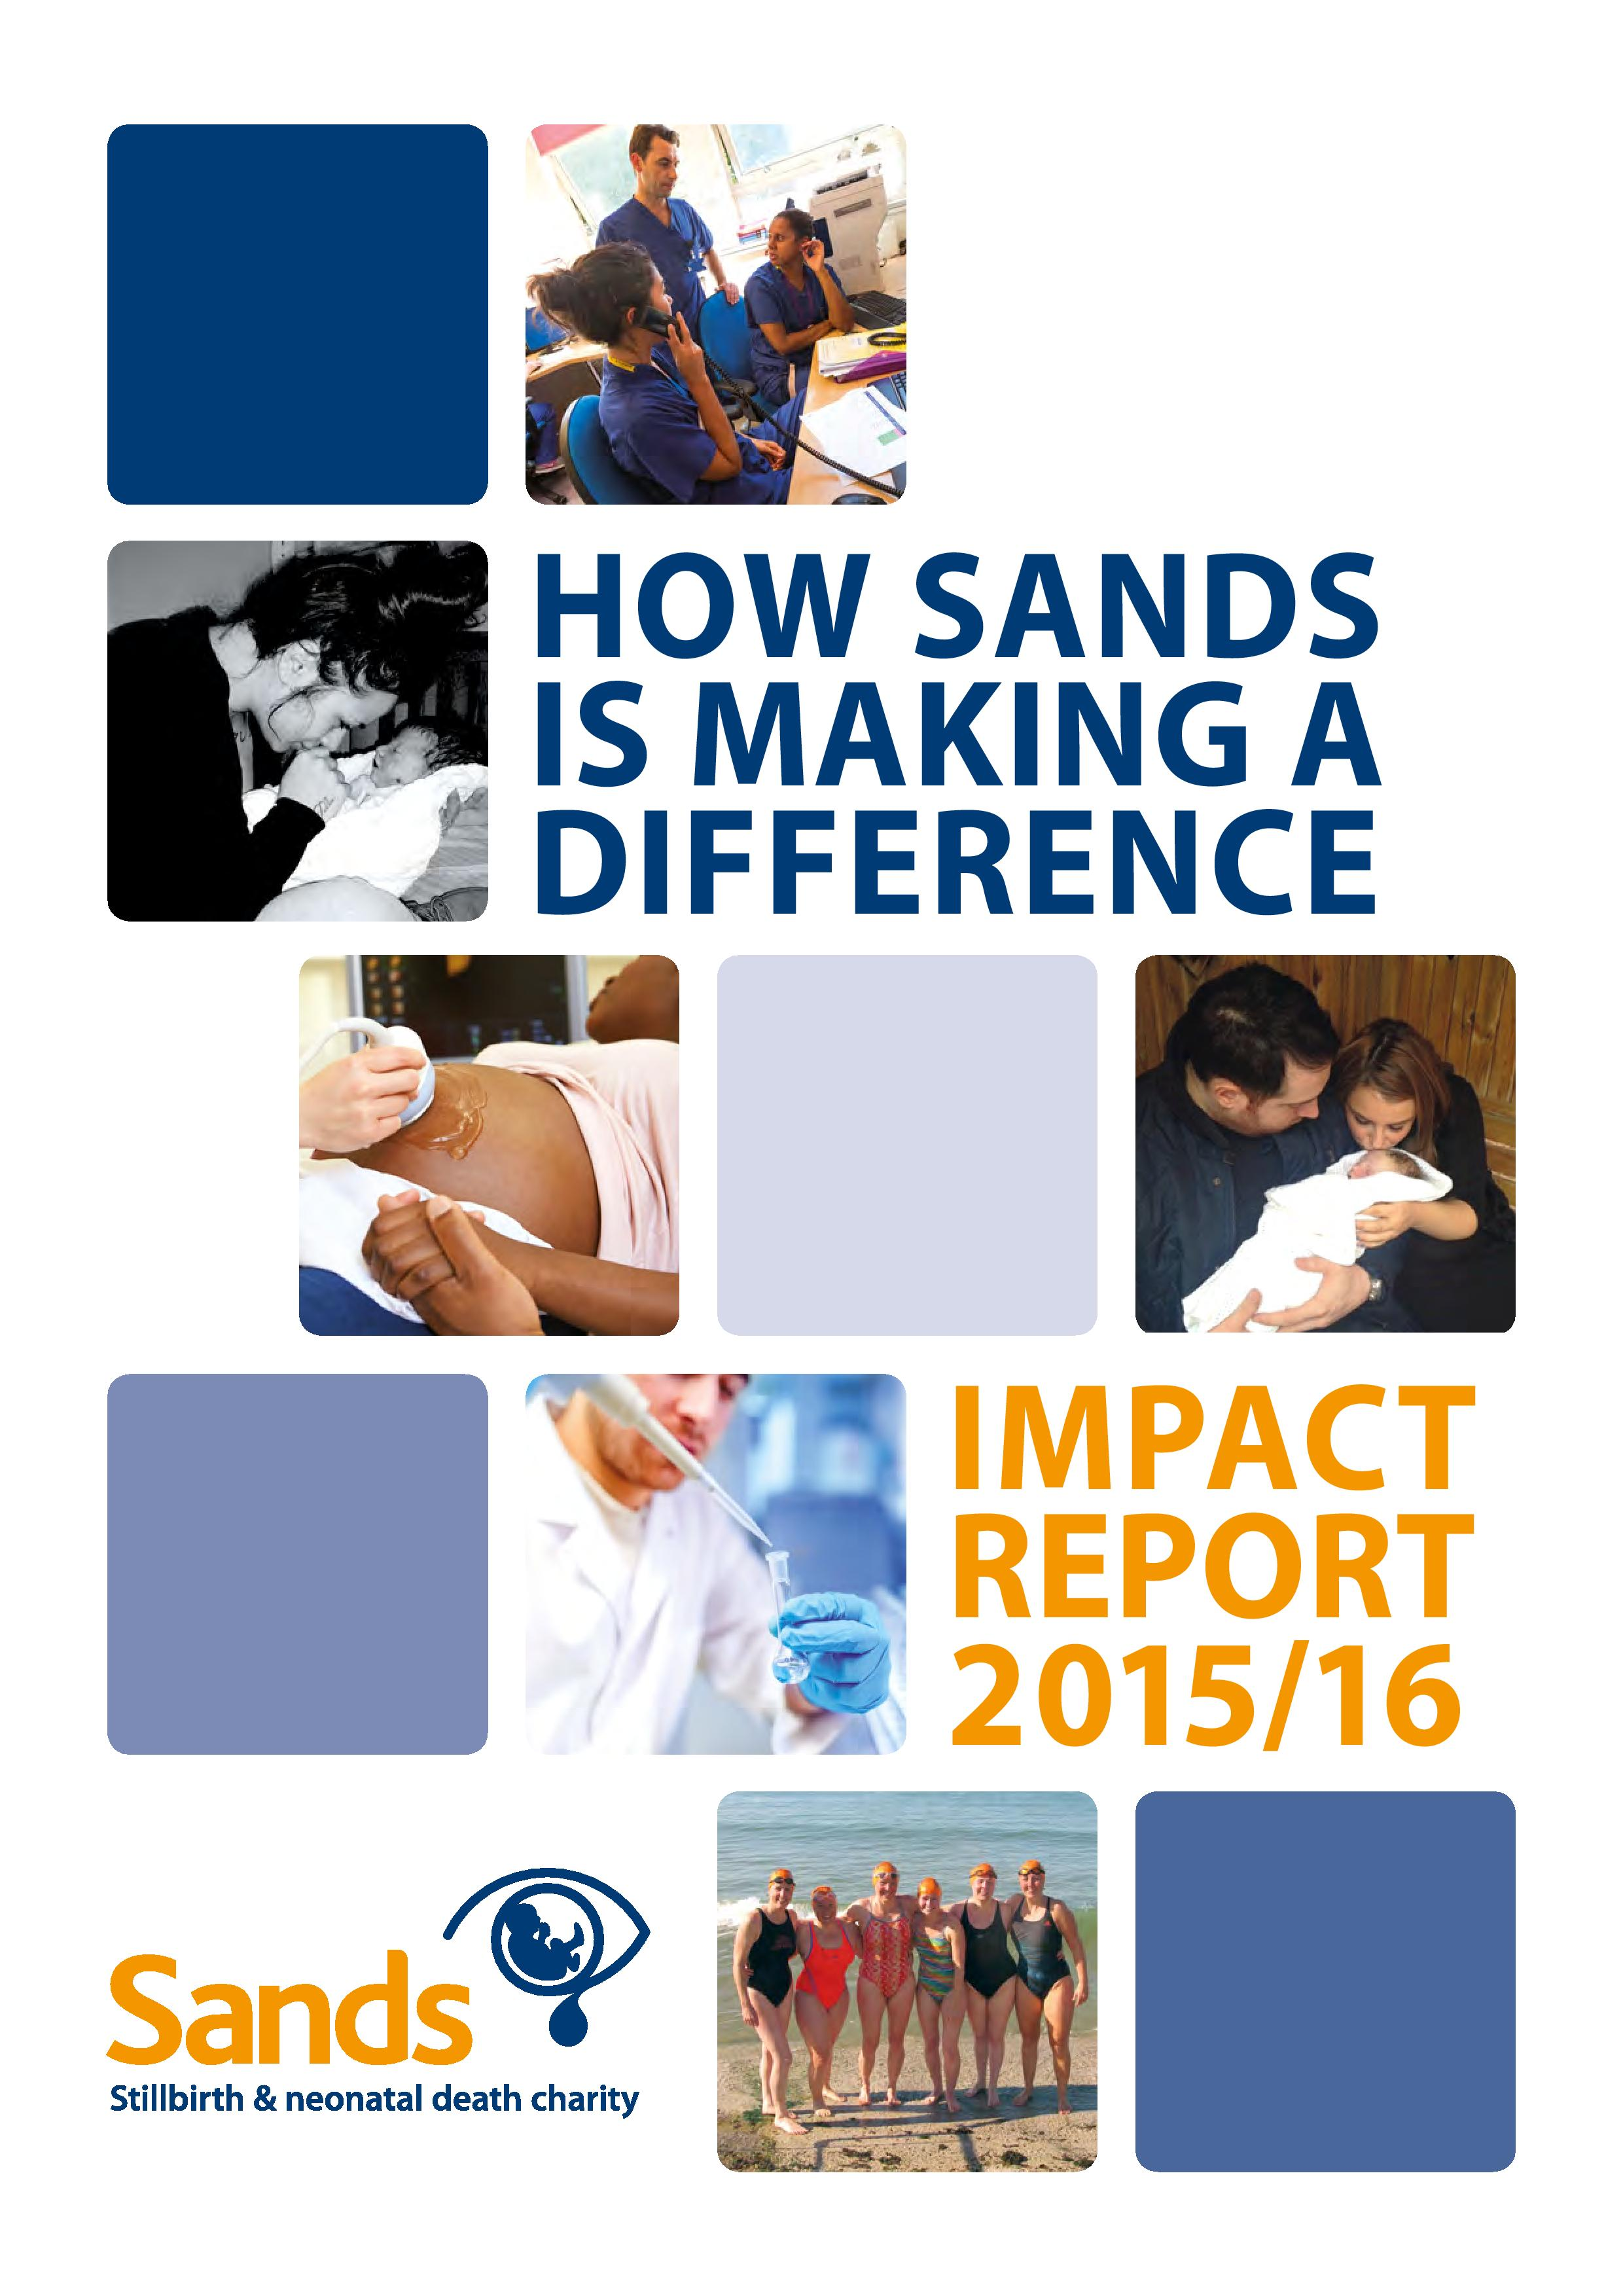 Sands Impact Report 2015 2016, How Sands is making a difference, stillbirth, neonatal death, impact, strategy